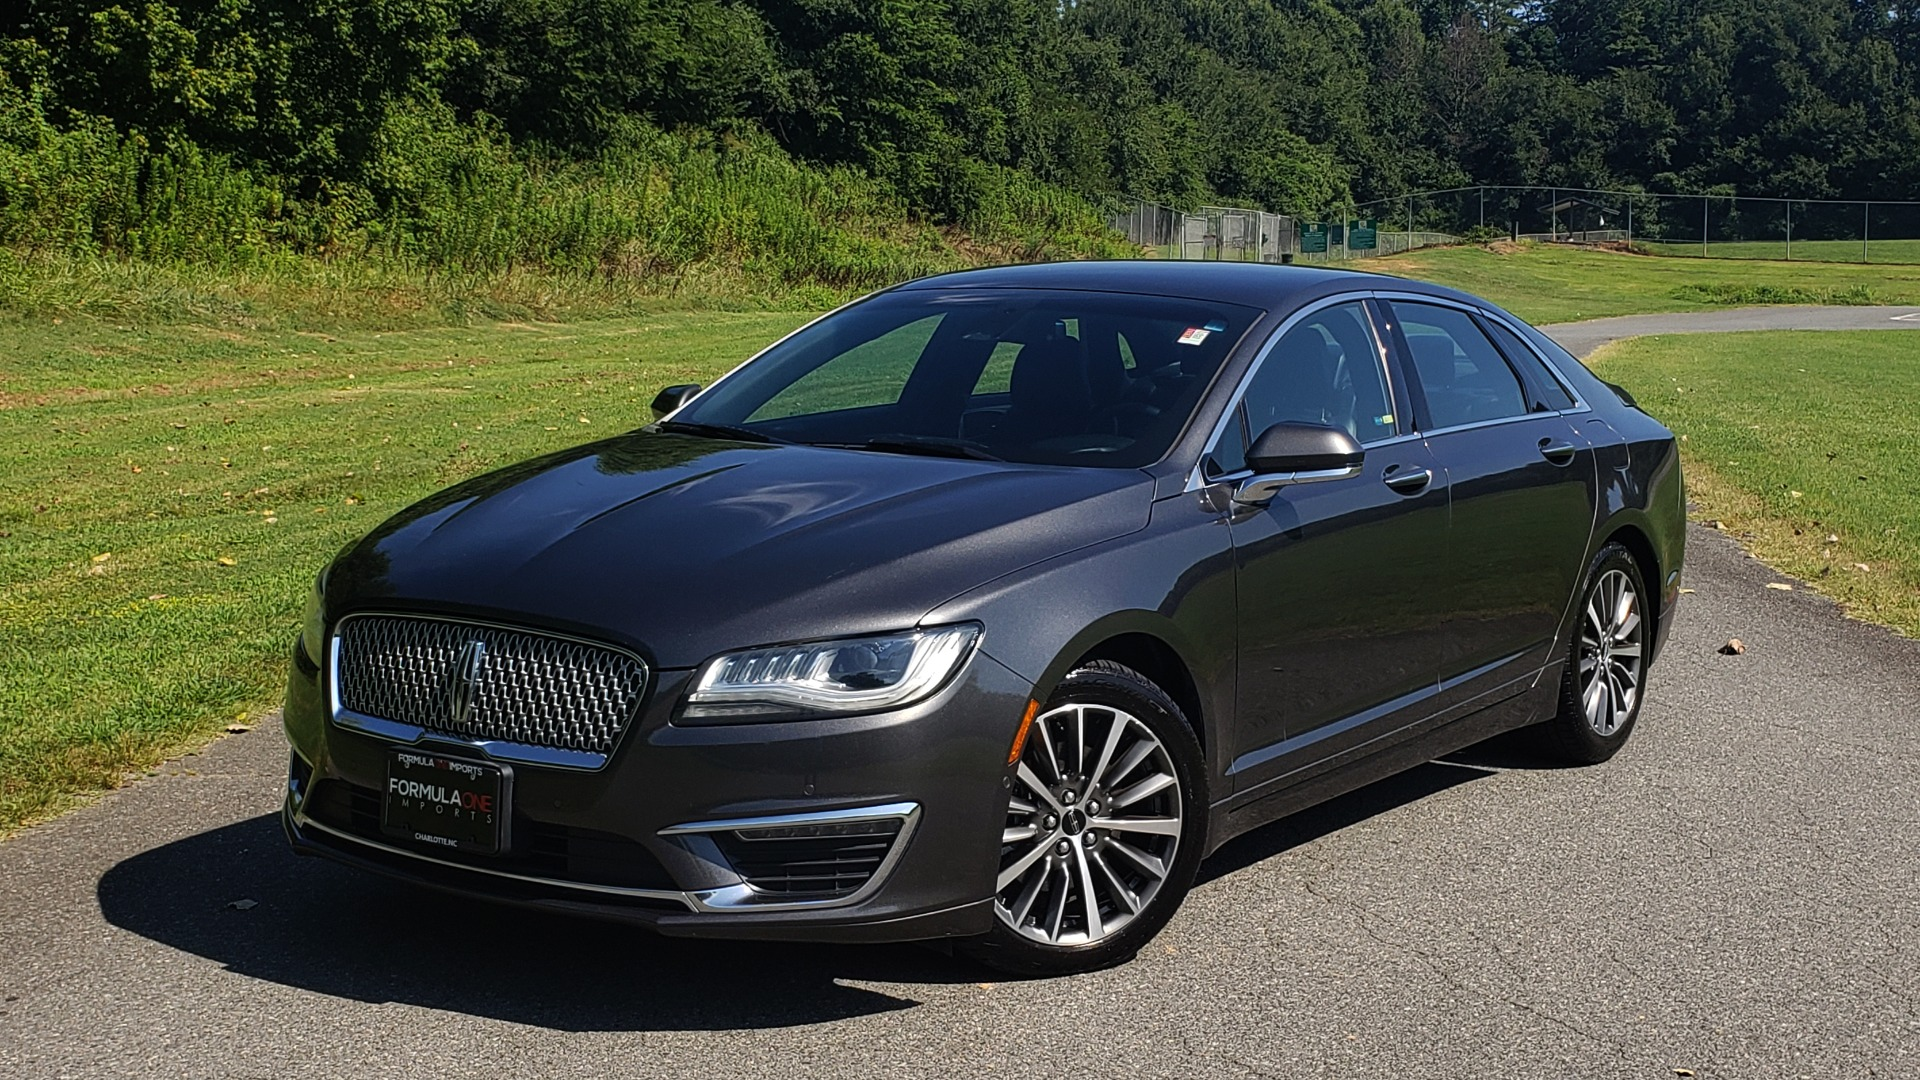 Used 2017 Lincoln MKZ SELECT PLUS / FWD / 2.0L 4-CYL / TECH / NAV / SNRF / REARVIEW for sale Sold at Formula Imports in Charlotte NC 28227 26